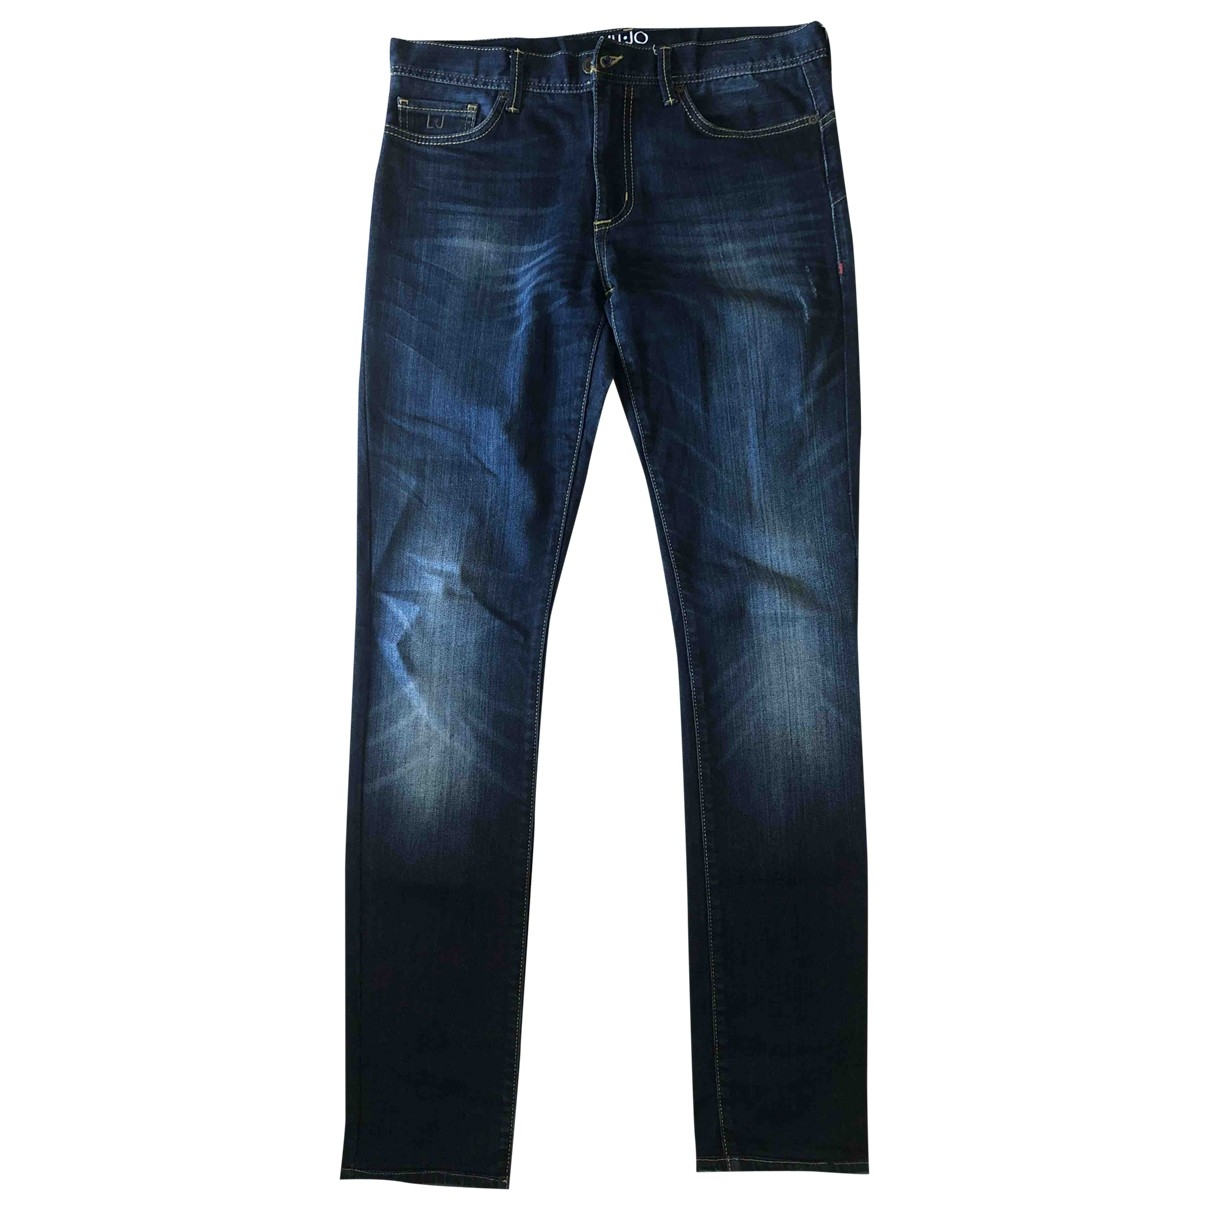 Liu.jo \N Blue Jeans for Men 38 - 40 FR